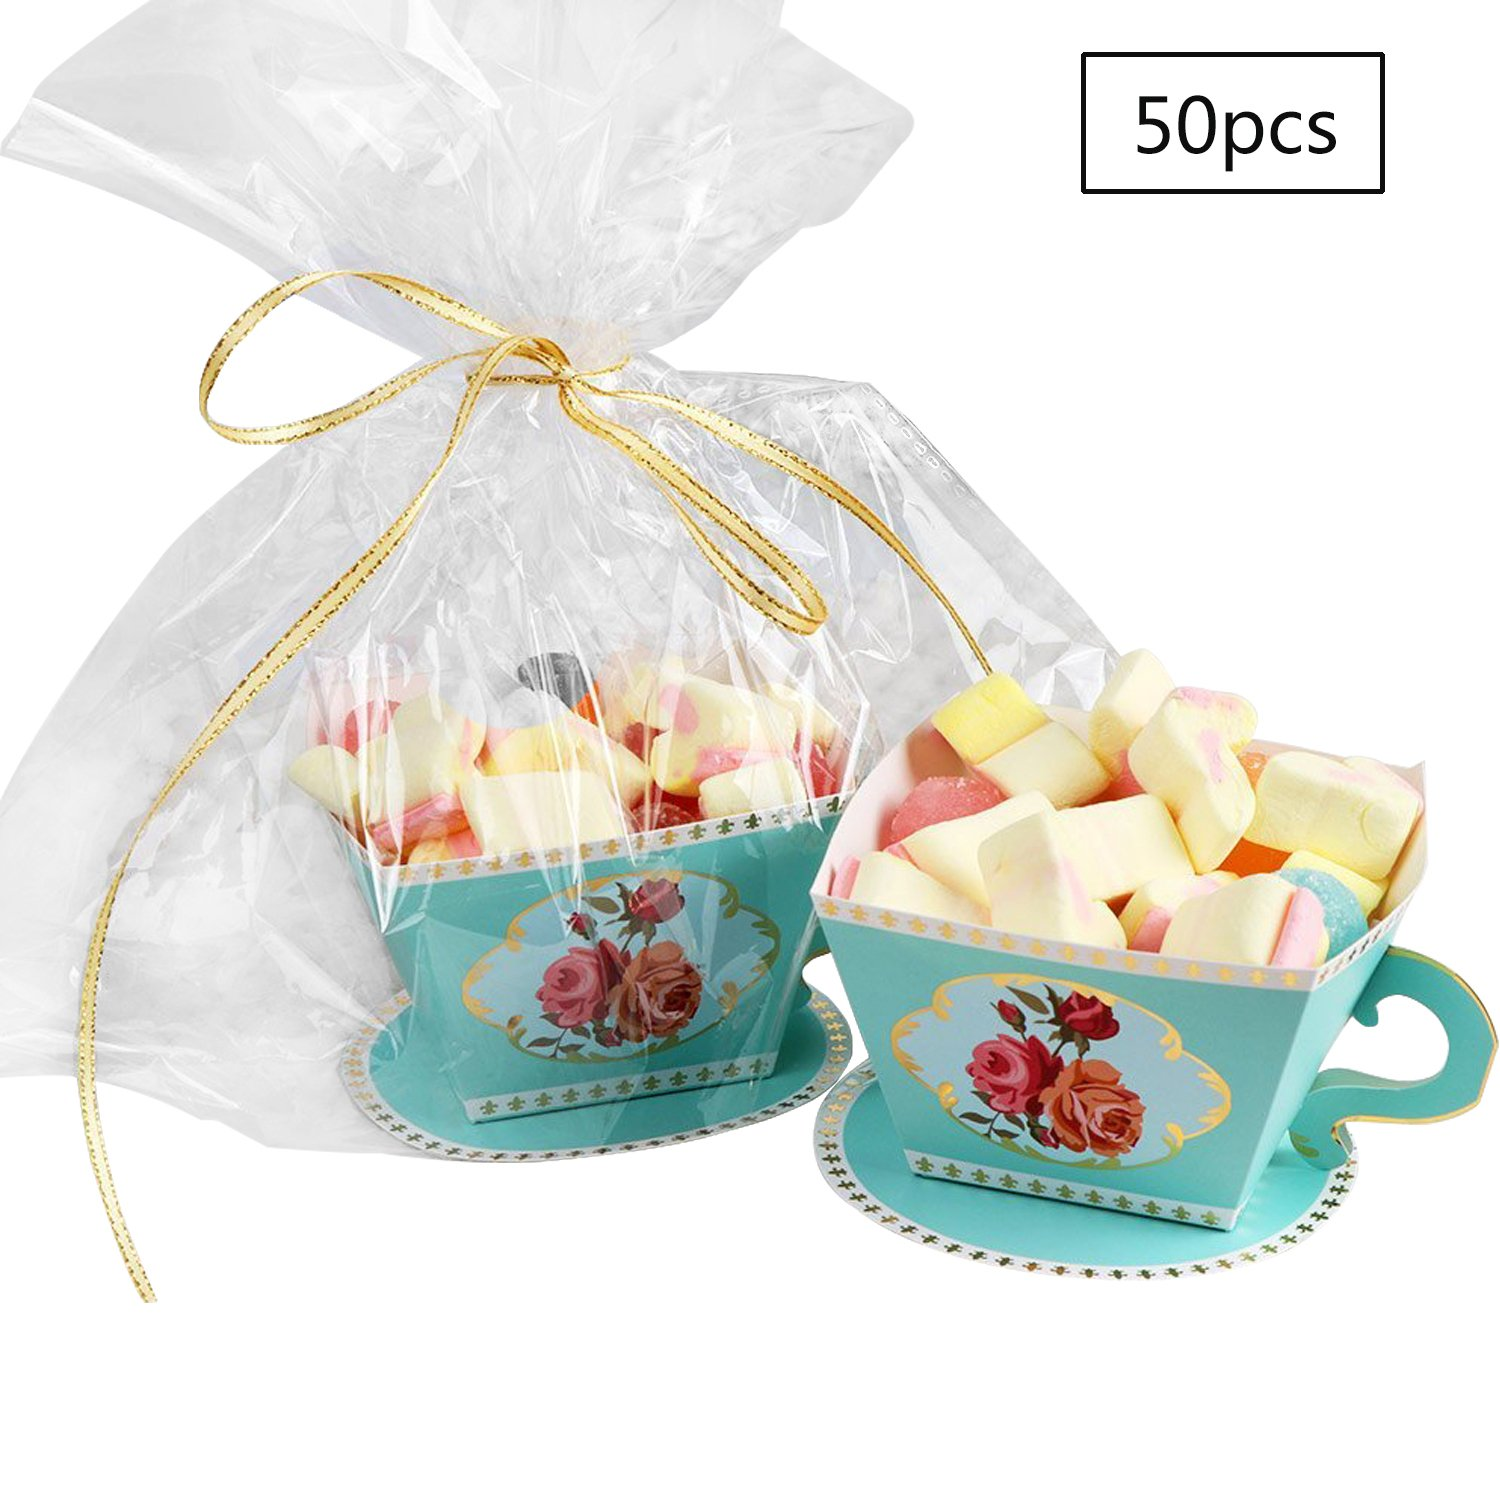 Amazon.com: E-Goal 50PCS/Pack Mini Teacup Shape Wedding Favors Candy ...